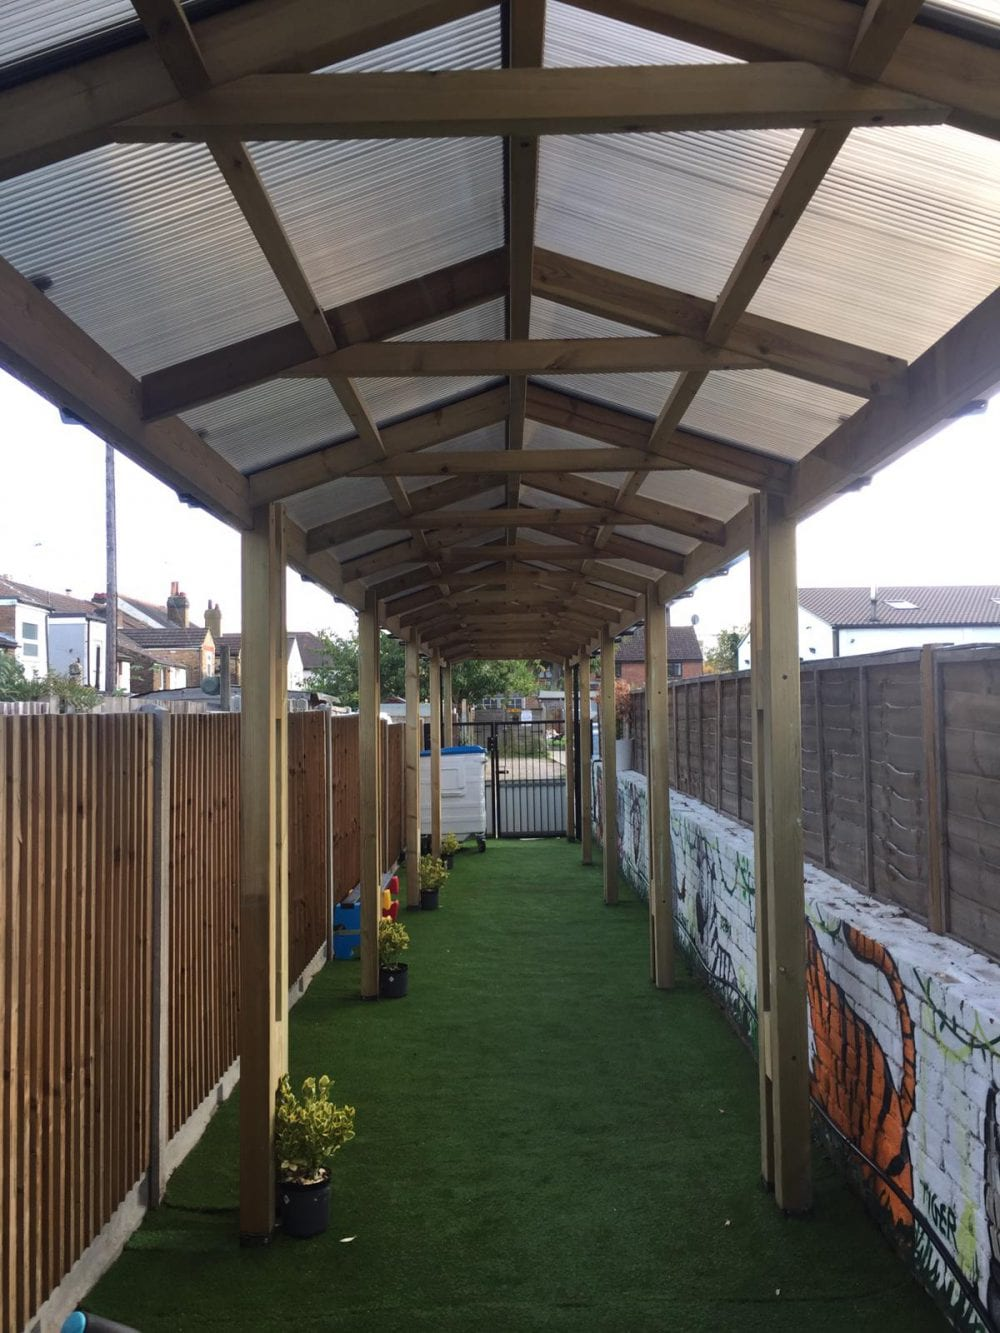 Wooden Walkways Amp Entrance Canopies Bespoke Outdoor Places